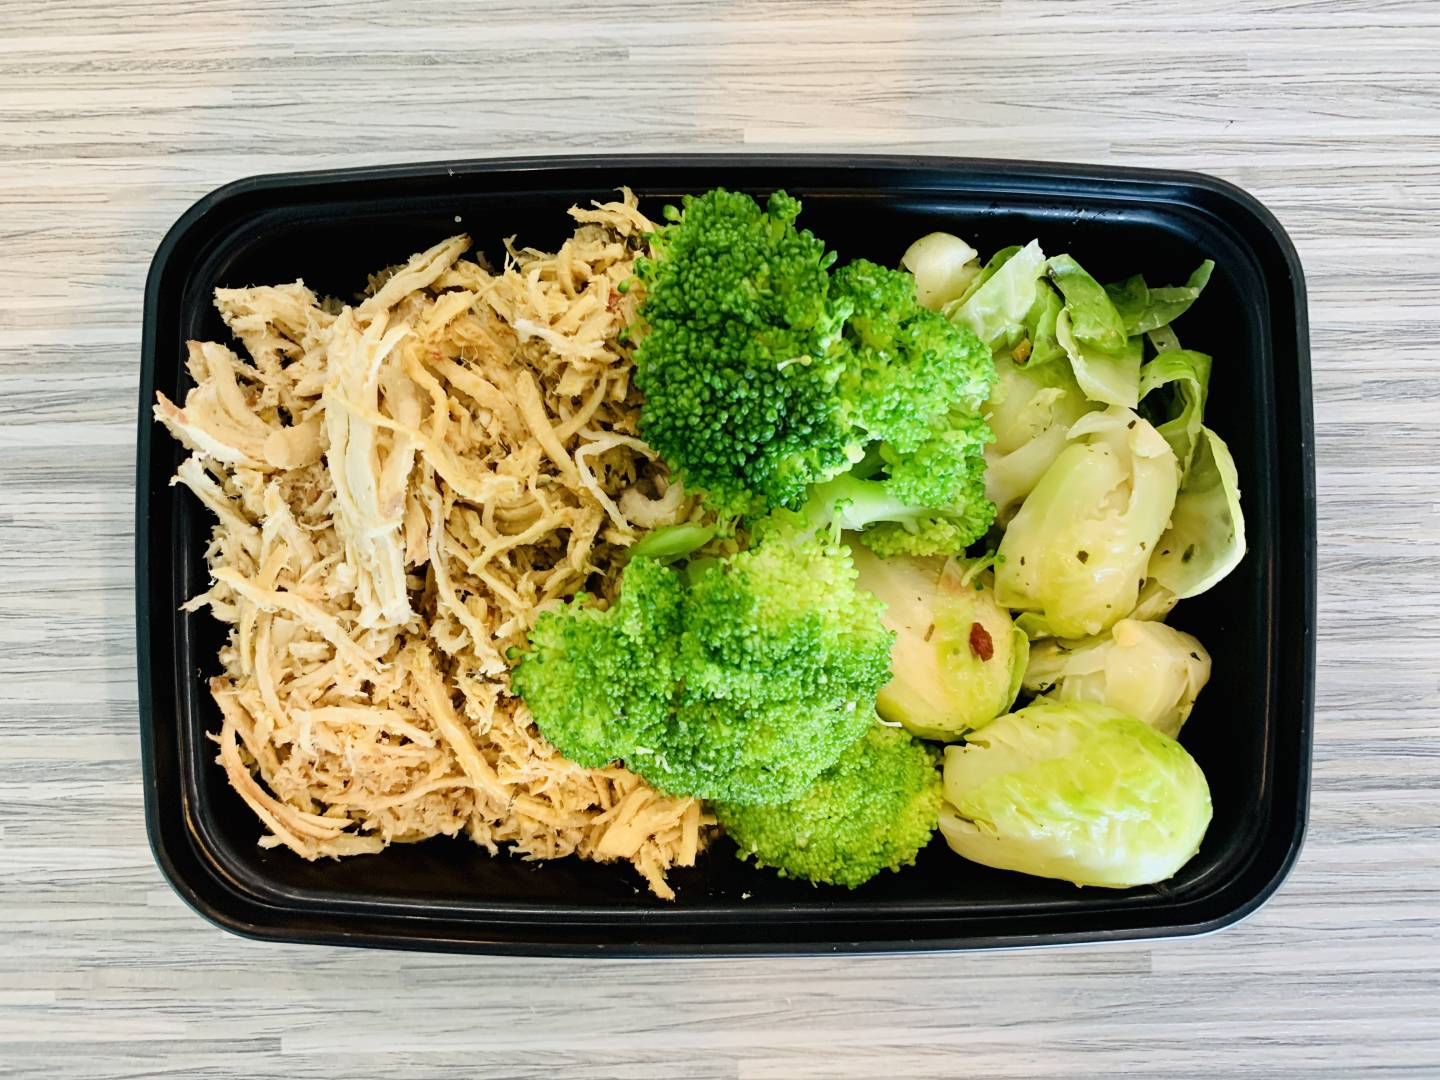 Shredded Chicken, Broccoli and Brussel Sprouts